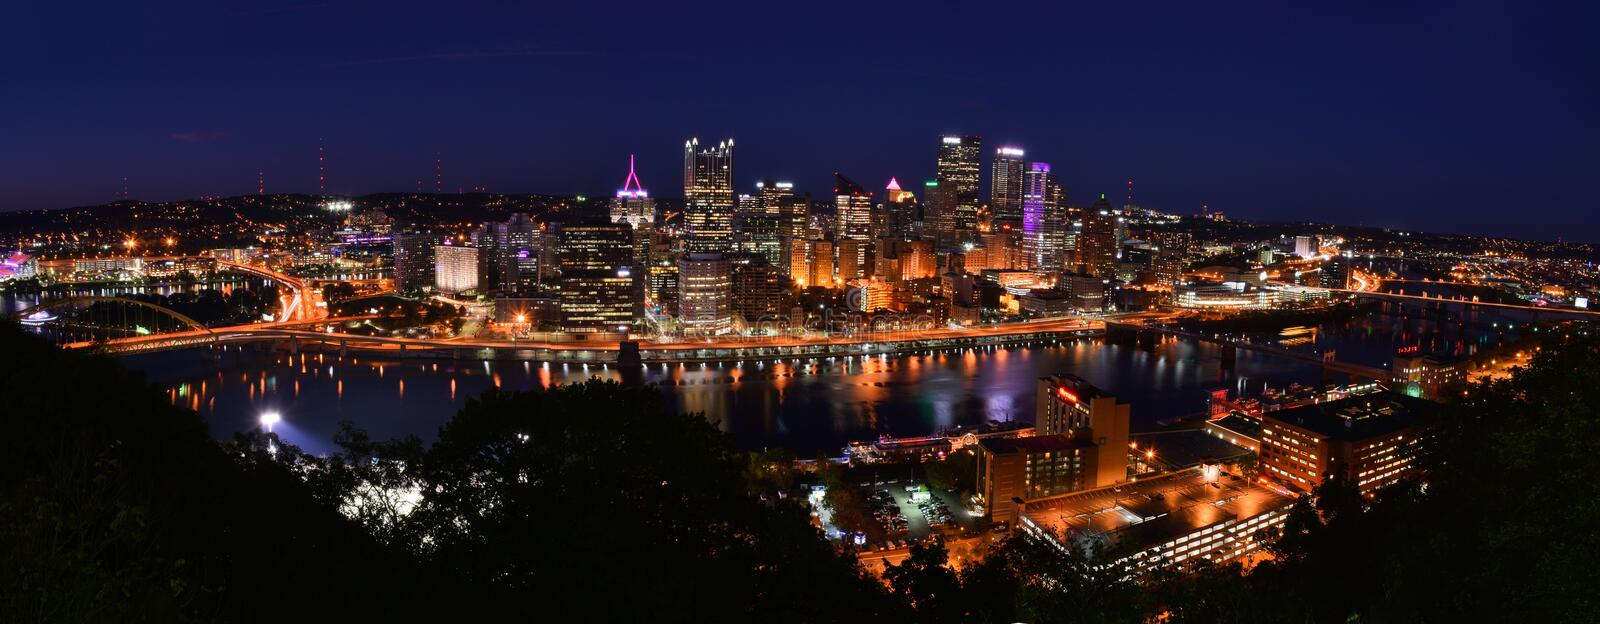 PITTSBURGH, PENNSYLVANIA-OCTOBER 19, 2017: NIGHTIME PANORAMIC PHOTOGRAPH SKYLINE OF PITTSBURGH, PENNSYLVANIA. NIGHTIME PANORAMIC PHOTOGRAPH SKYLINE OF PITTSBURGH stock images